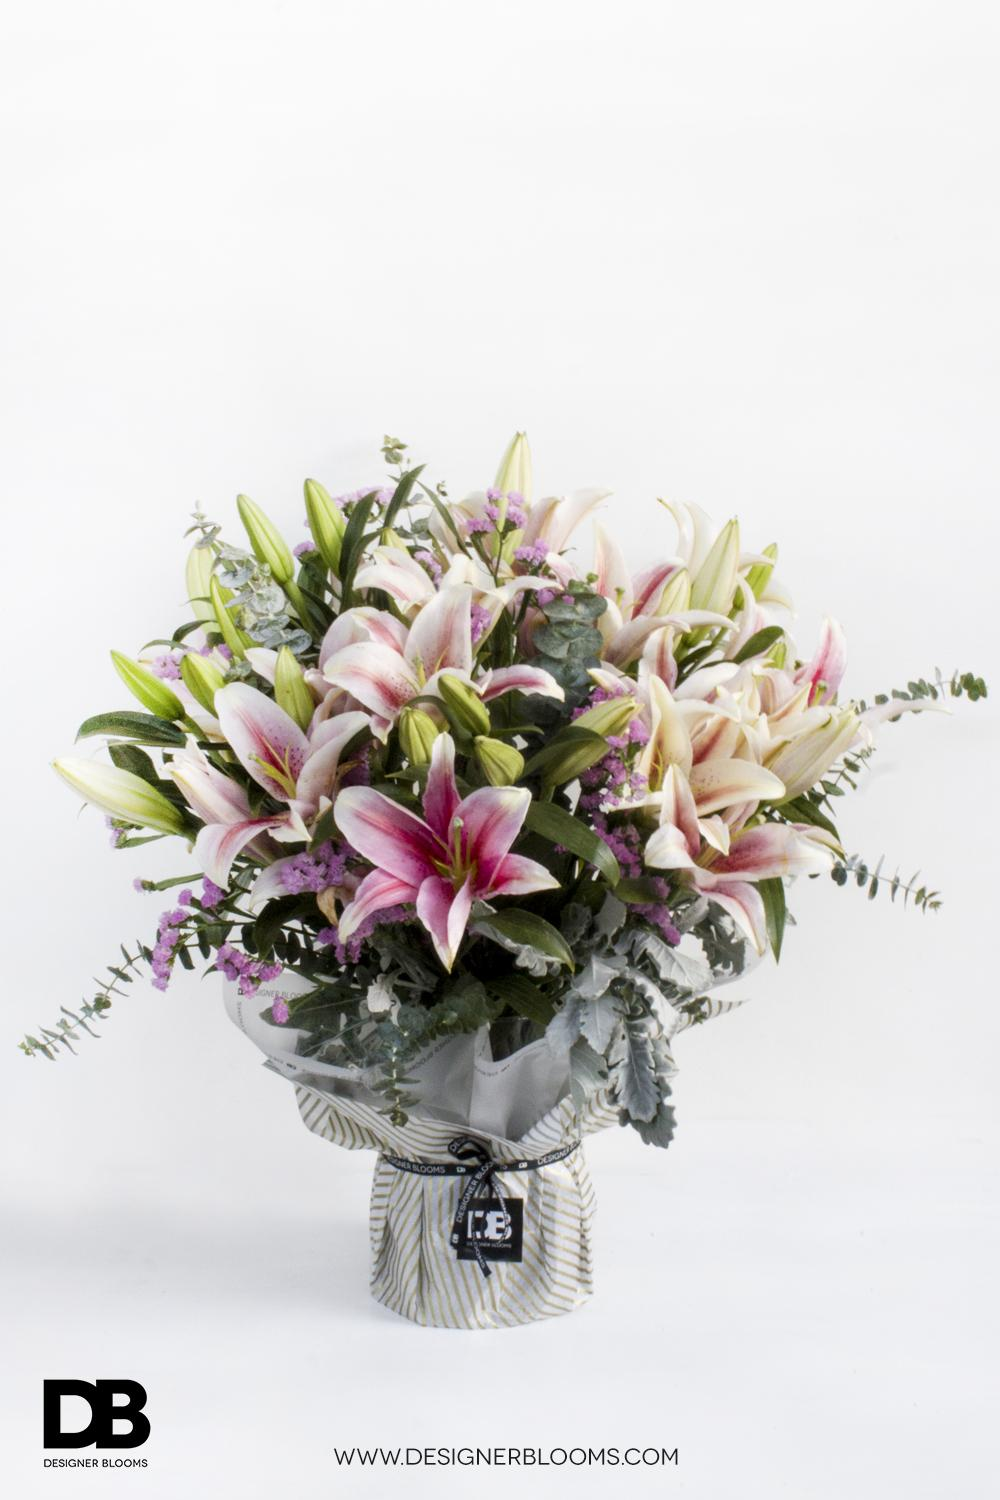 6 Lilies in a Vase